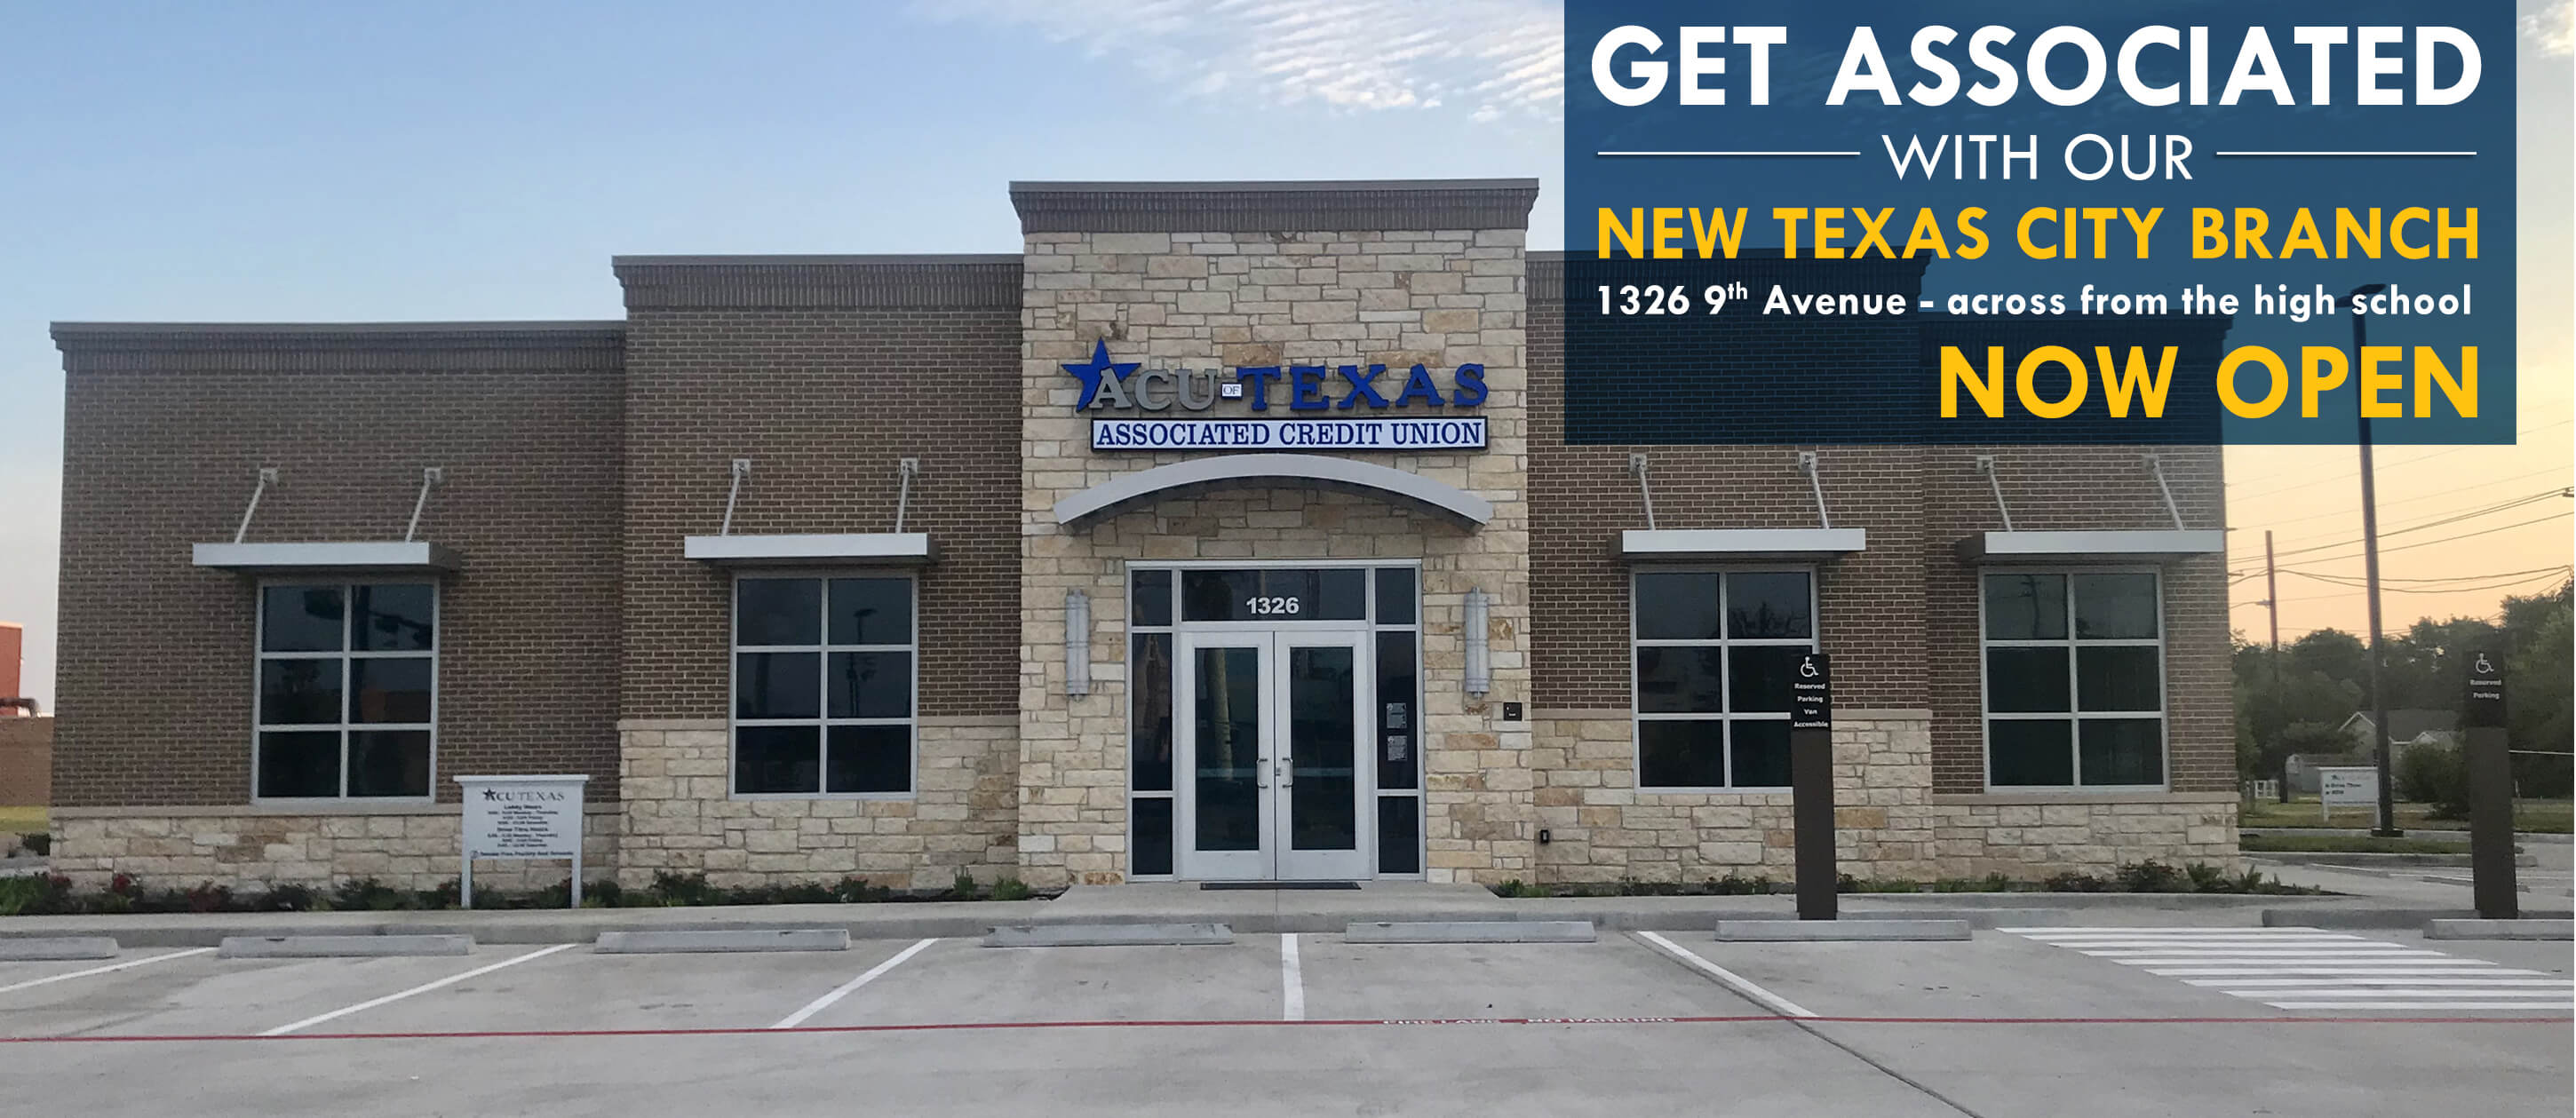 Texas City Branch Now Open